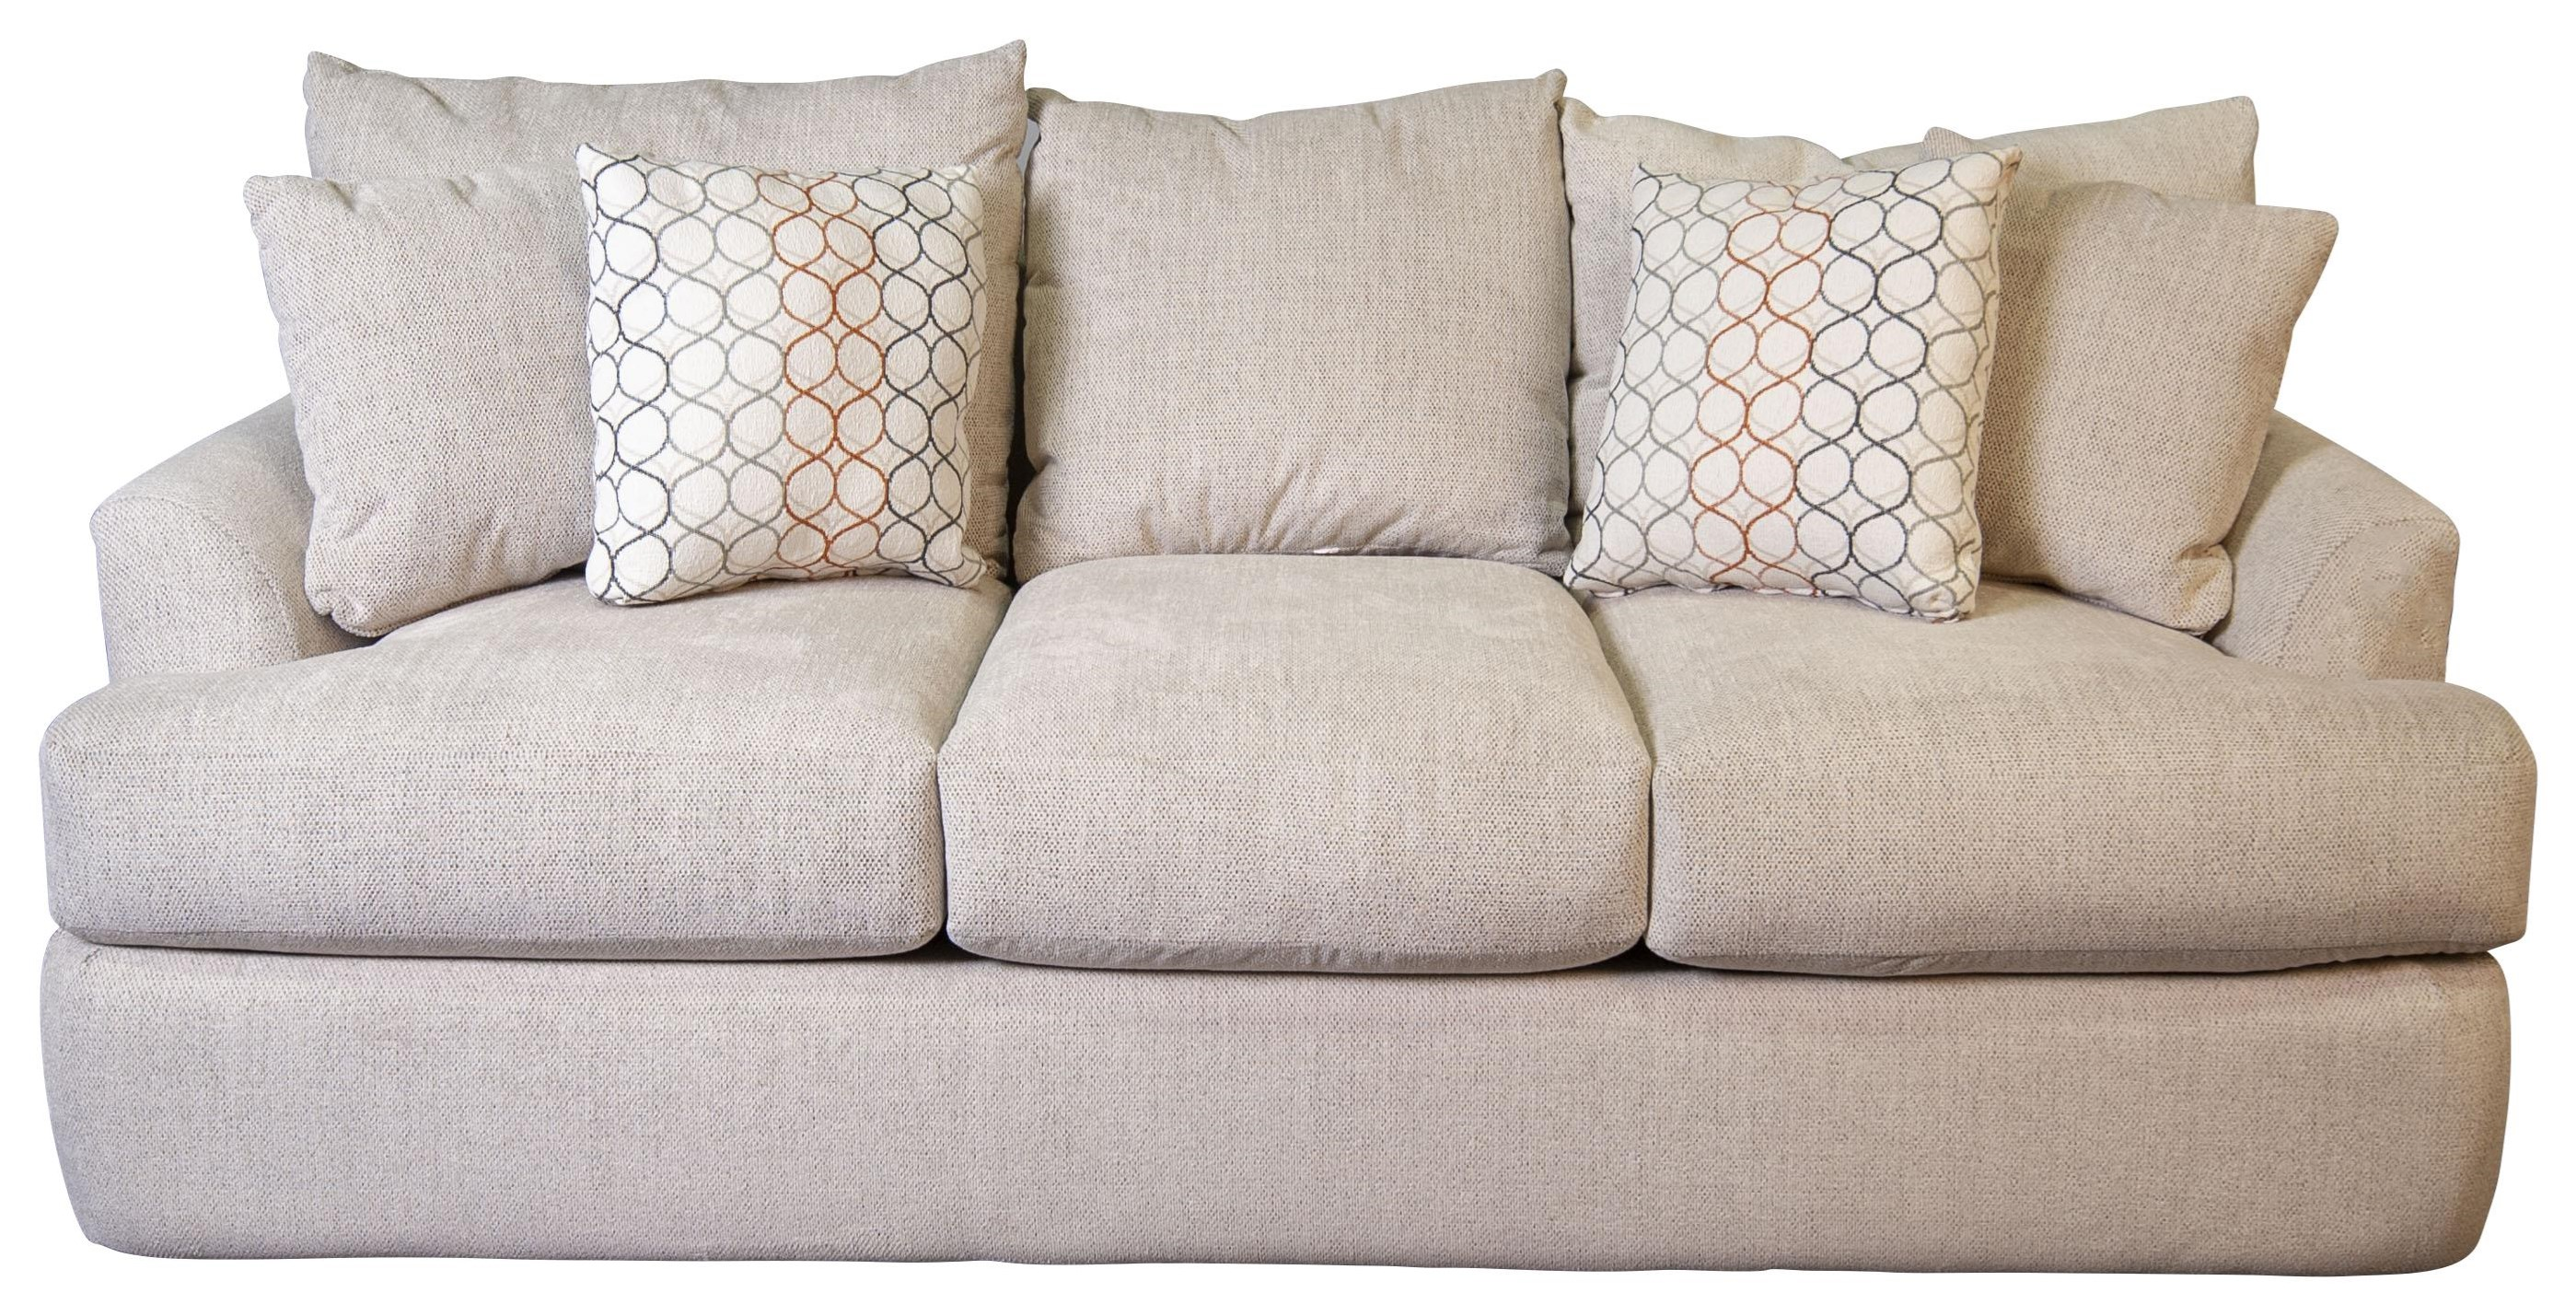 Atticus Atticus Sofa with Accent Pillows by Klaussner at Morris Home